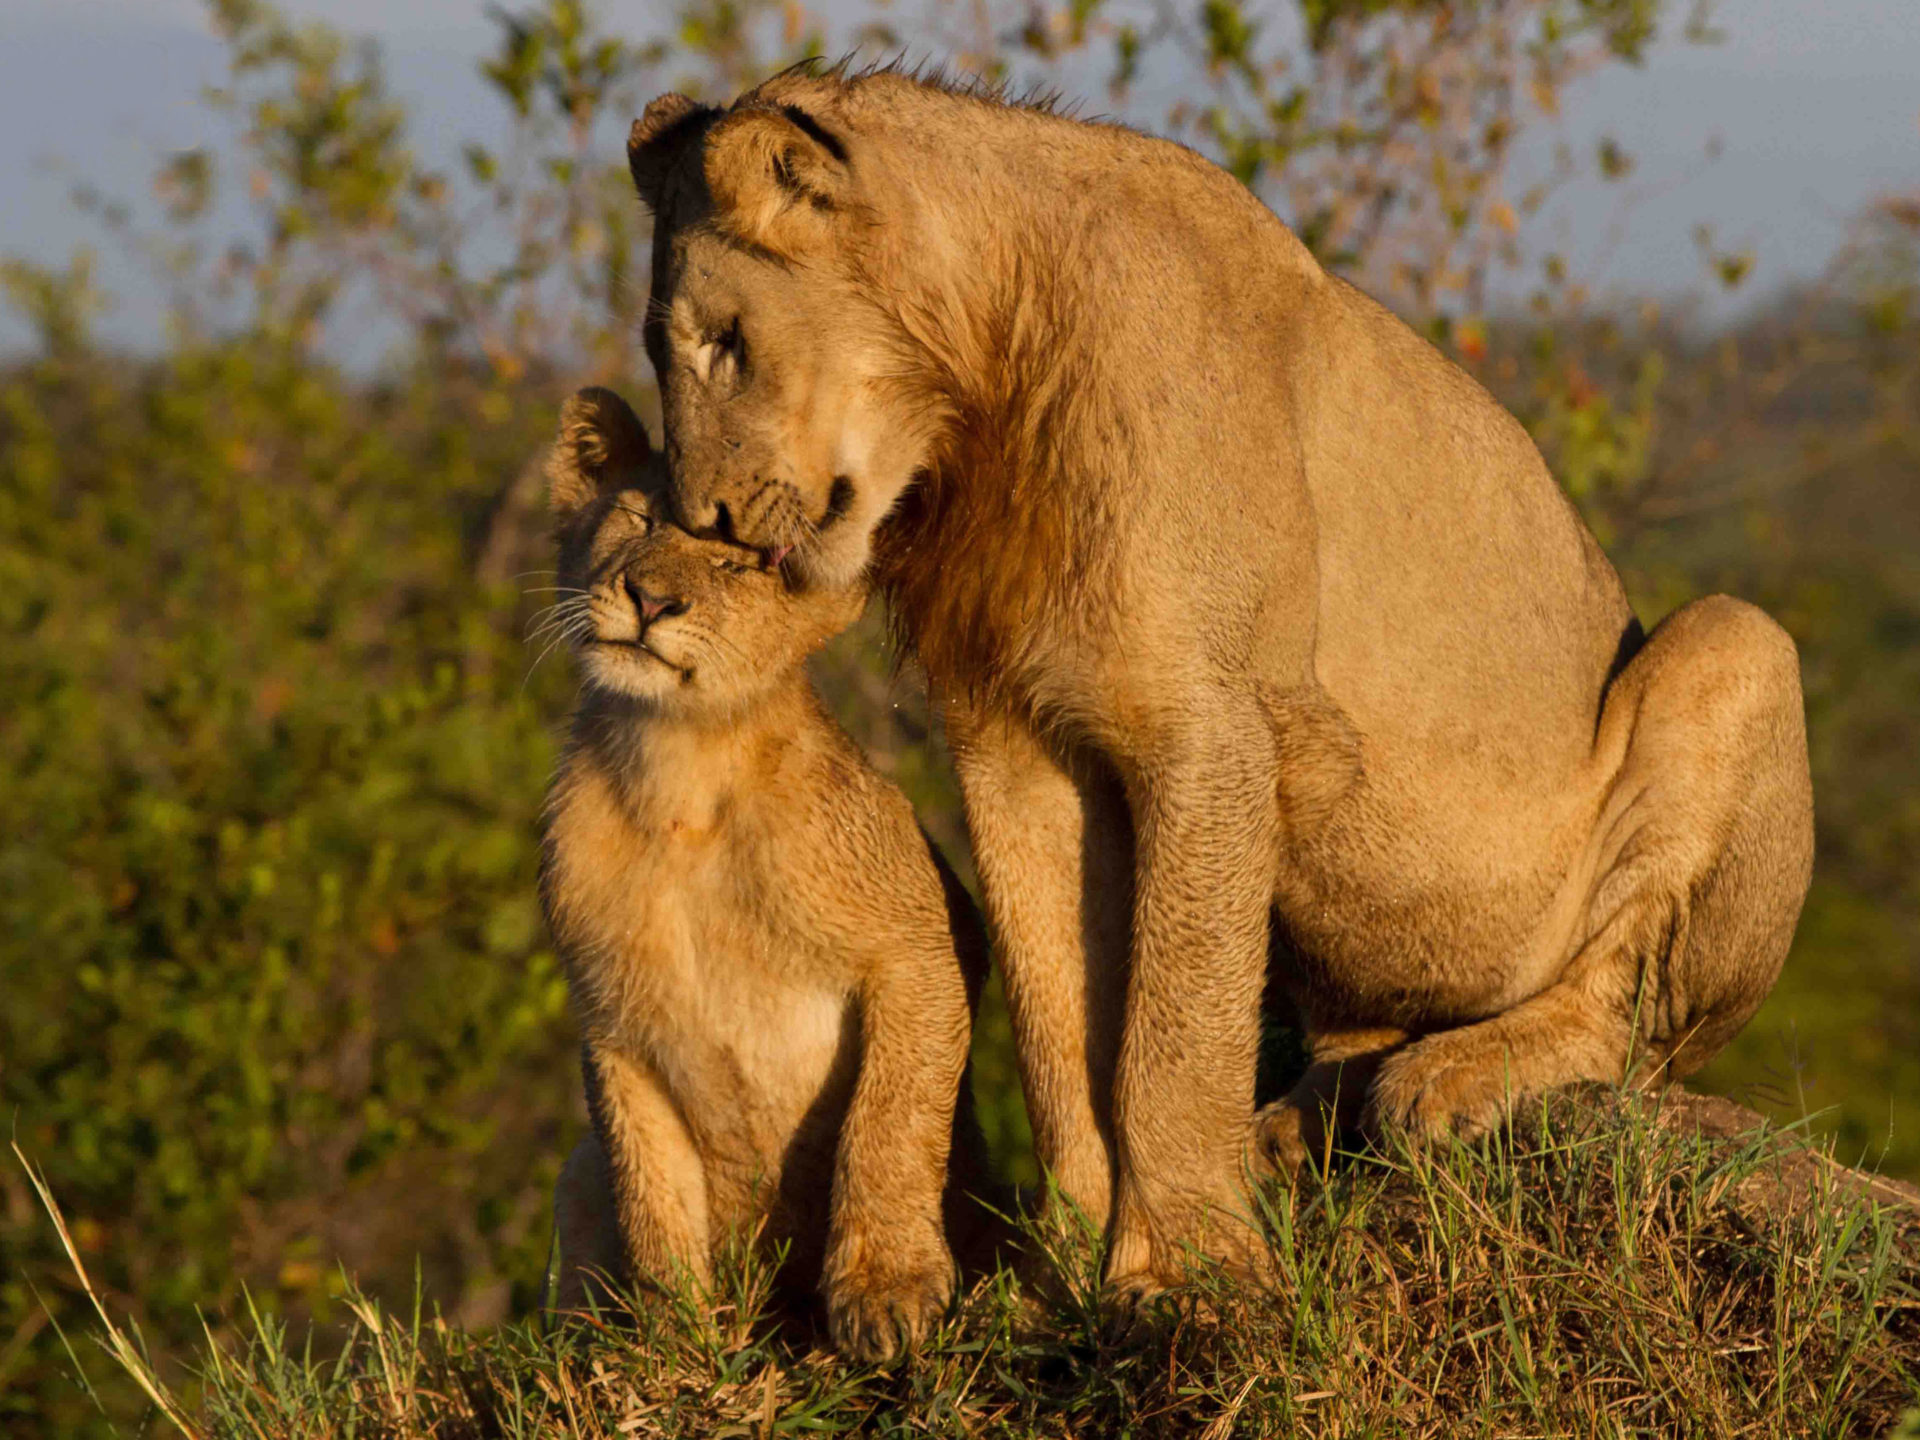 Cute Frog Wallpapers Hd Maternal Love Lioness With Cub Widescreen Free Download